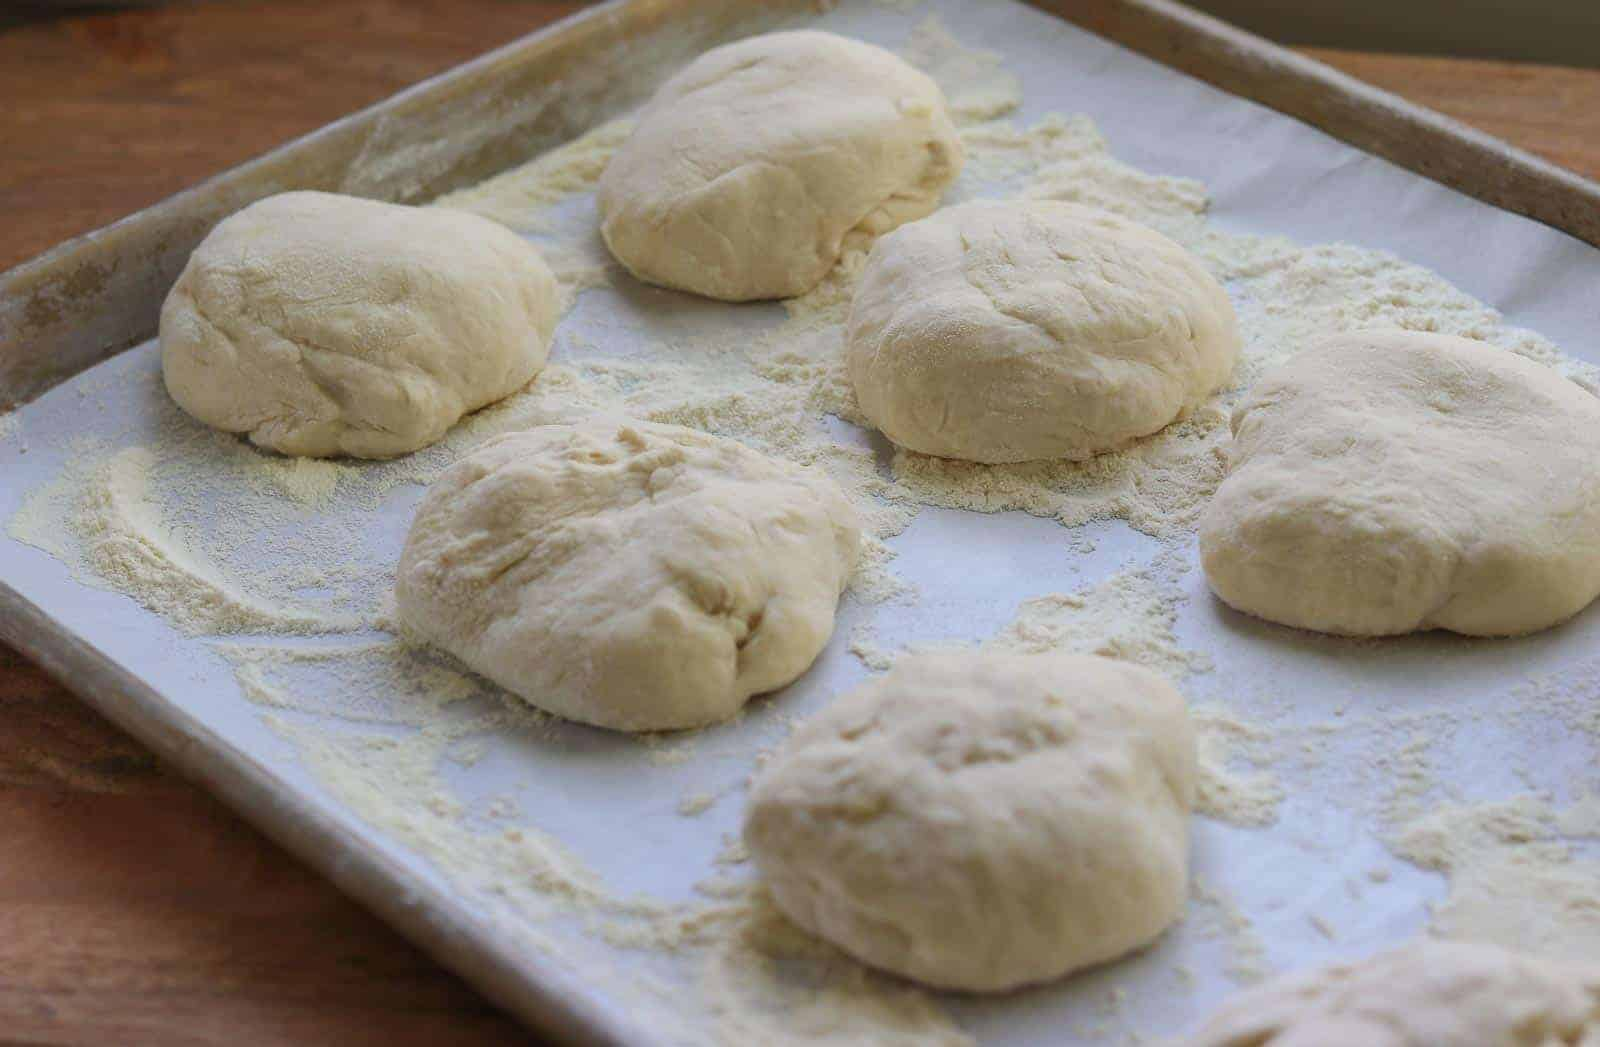 Pizza dough on a baking sheet lined with parchment from Gourmet Done Skinny